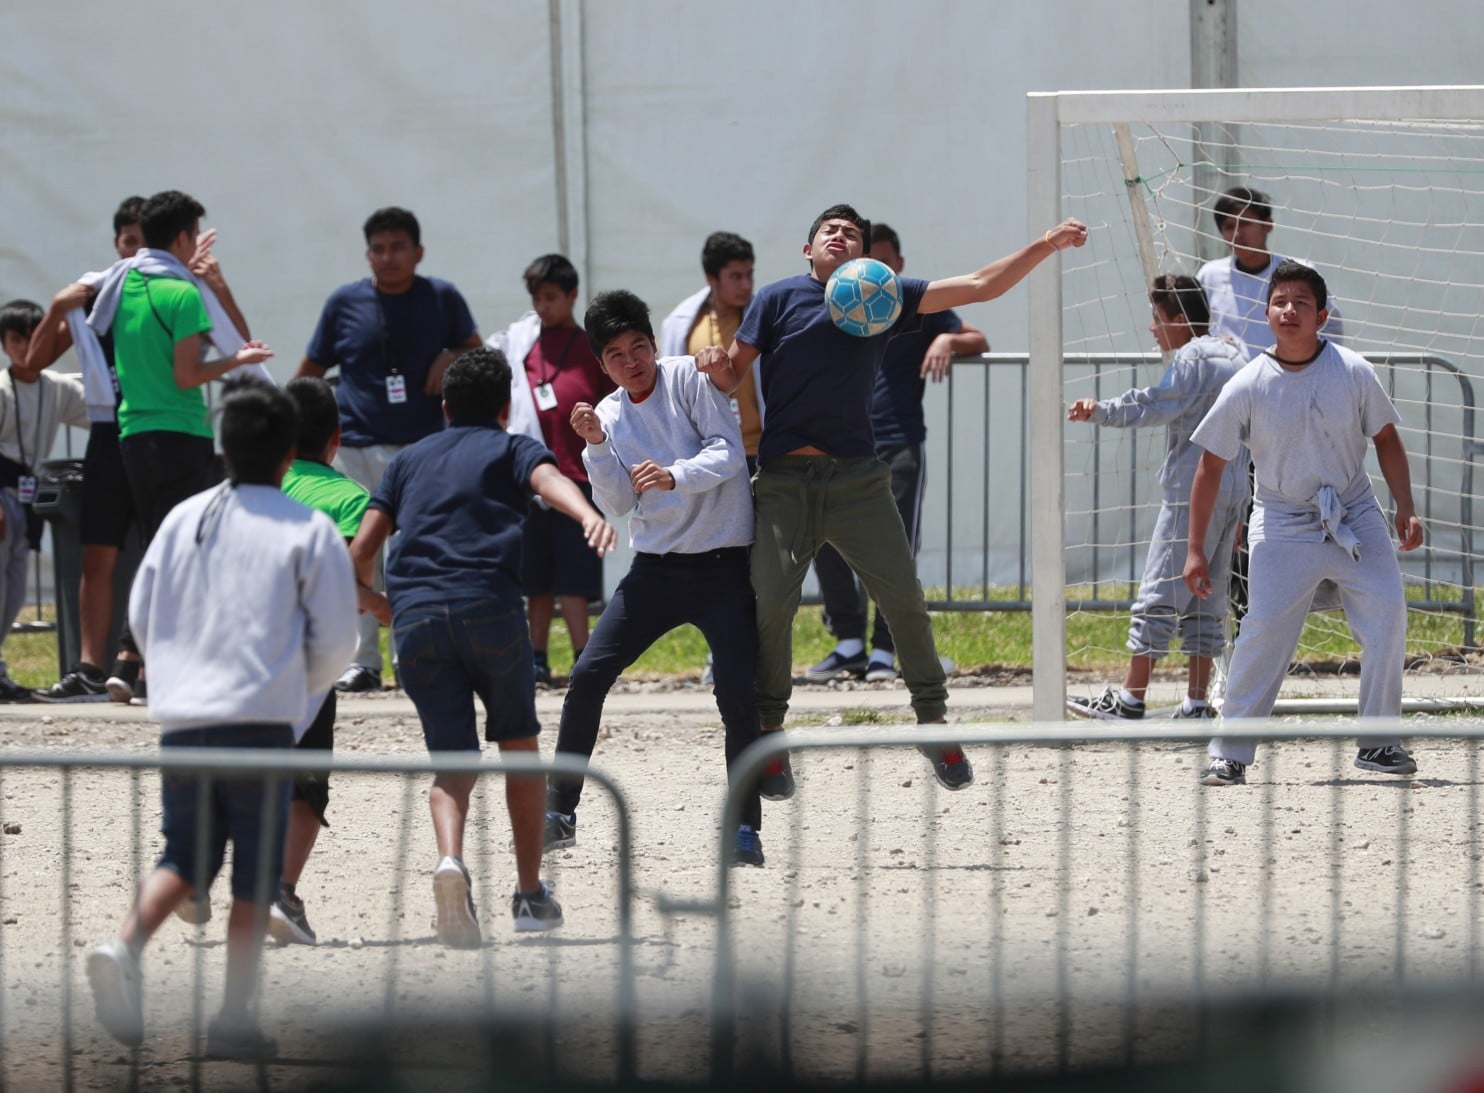 Migrant children play soccer at the Homestead  Temporary Shelter for Unaccompanied Children in Homestead, Fla., on  April 19. The Trump administration is canceling educational and  recreational programs at such shelters, saying the government has run  out of funding for them amid a crush of migrants crossing the border.  (Wilfredo Lee/AP)